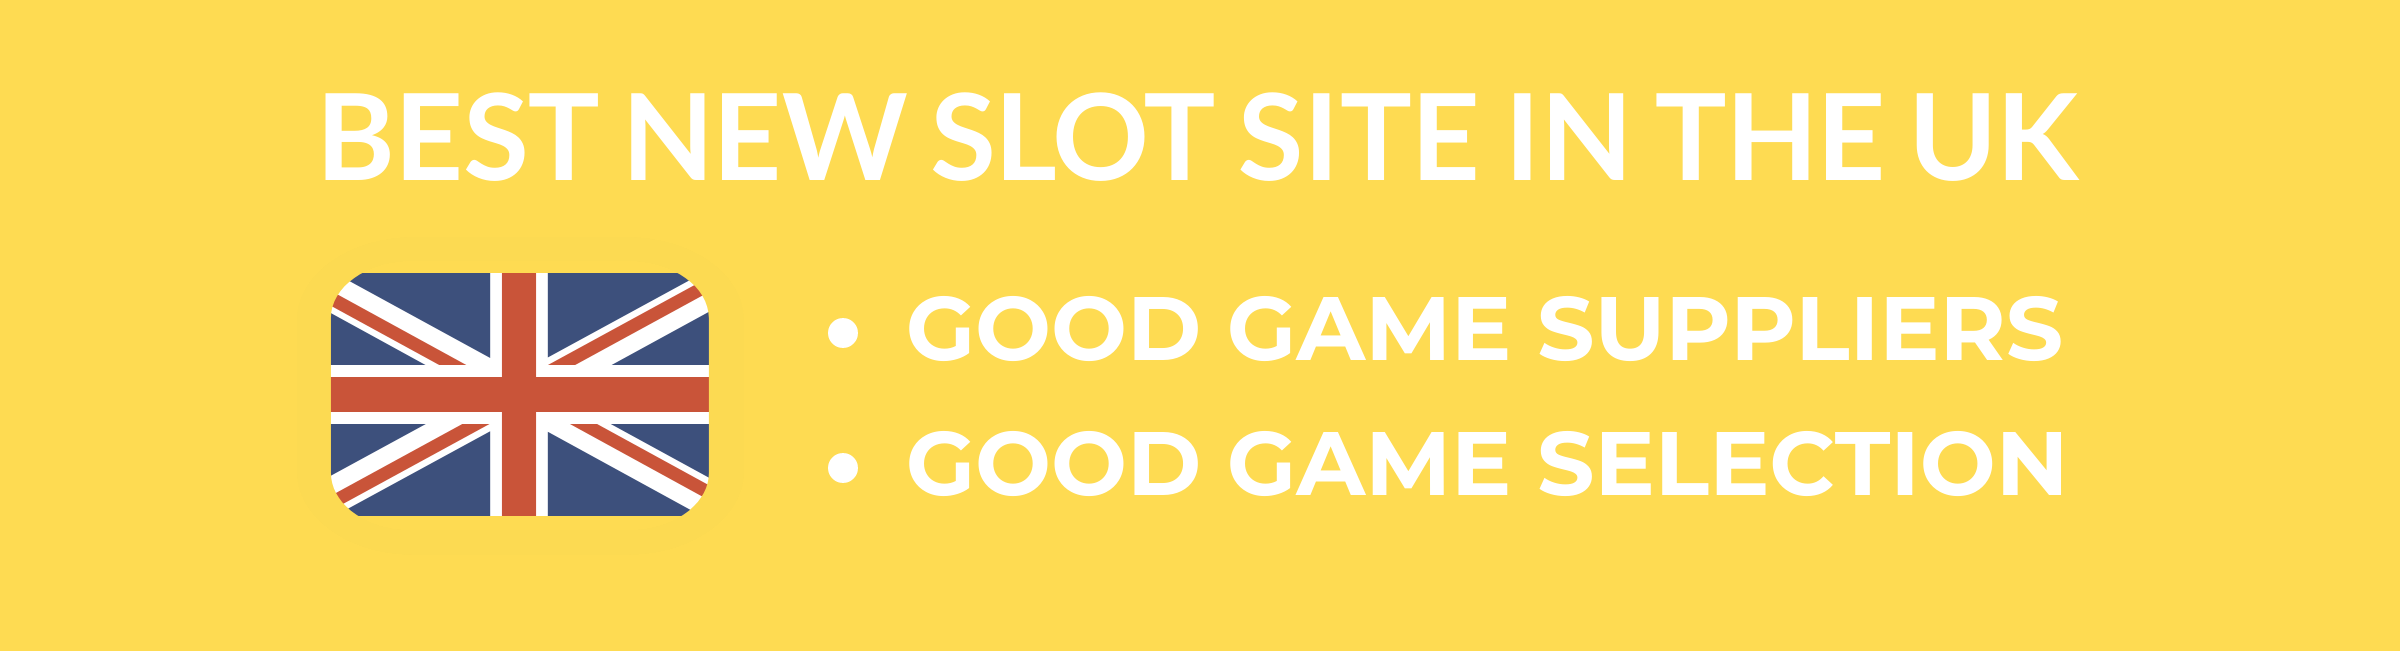 best new slot sites in the UK